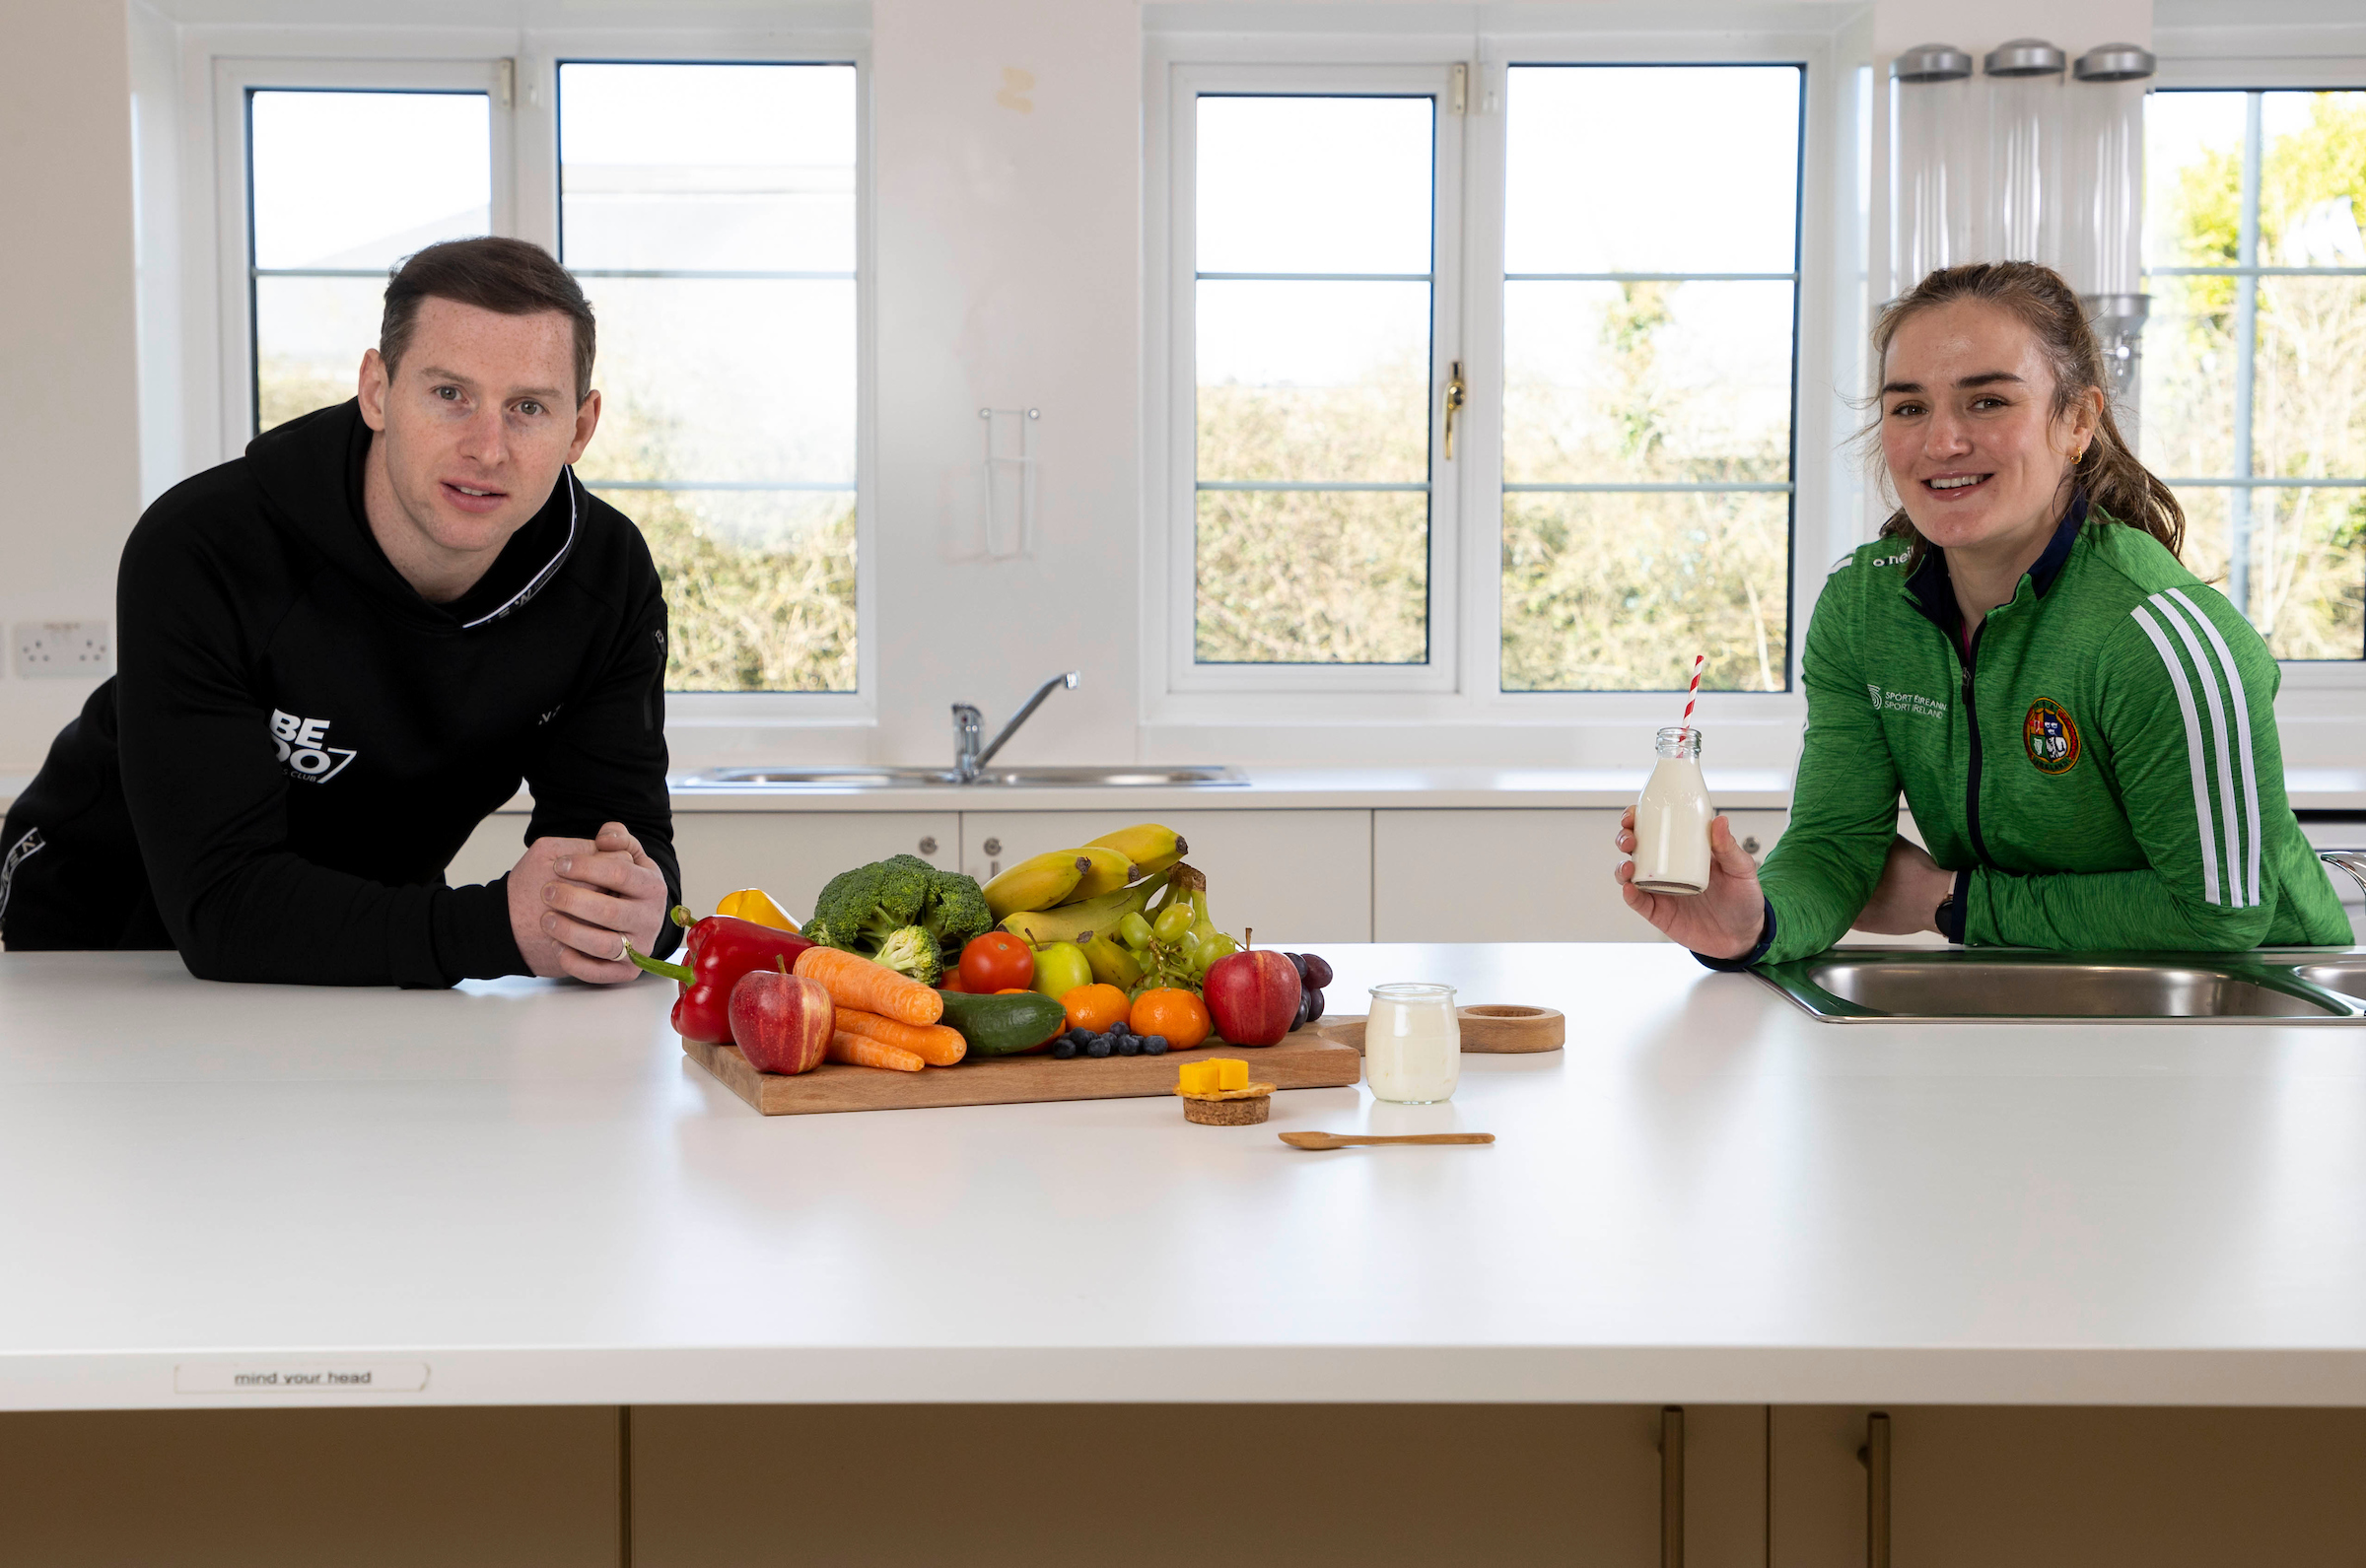 Ireland's sporting Heroes inspiring young people on and off the Pitch!